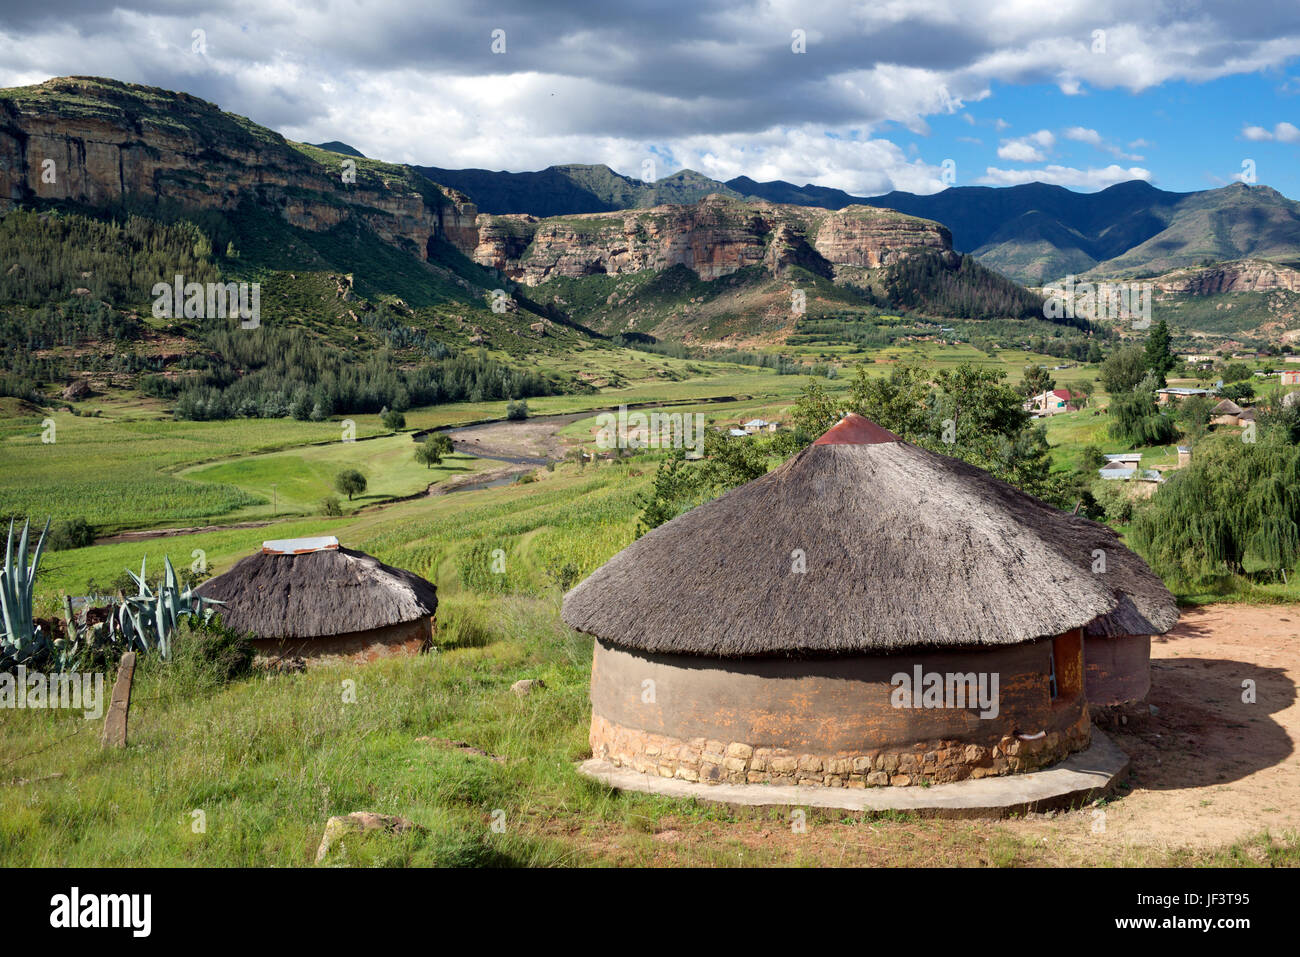 Landscape hlotse river valley with thatched rondavel houses leribe district lesotho southern africa stock image